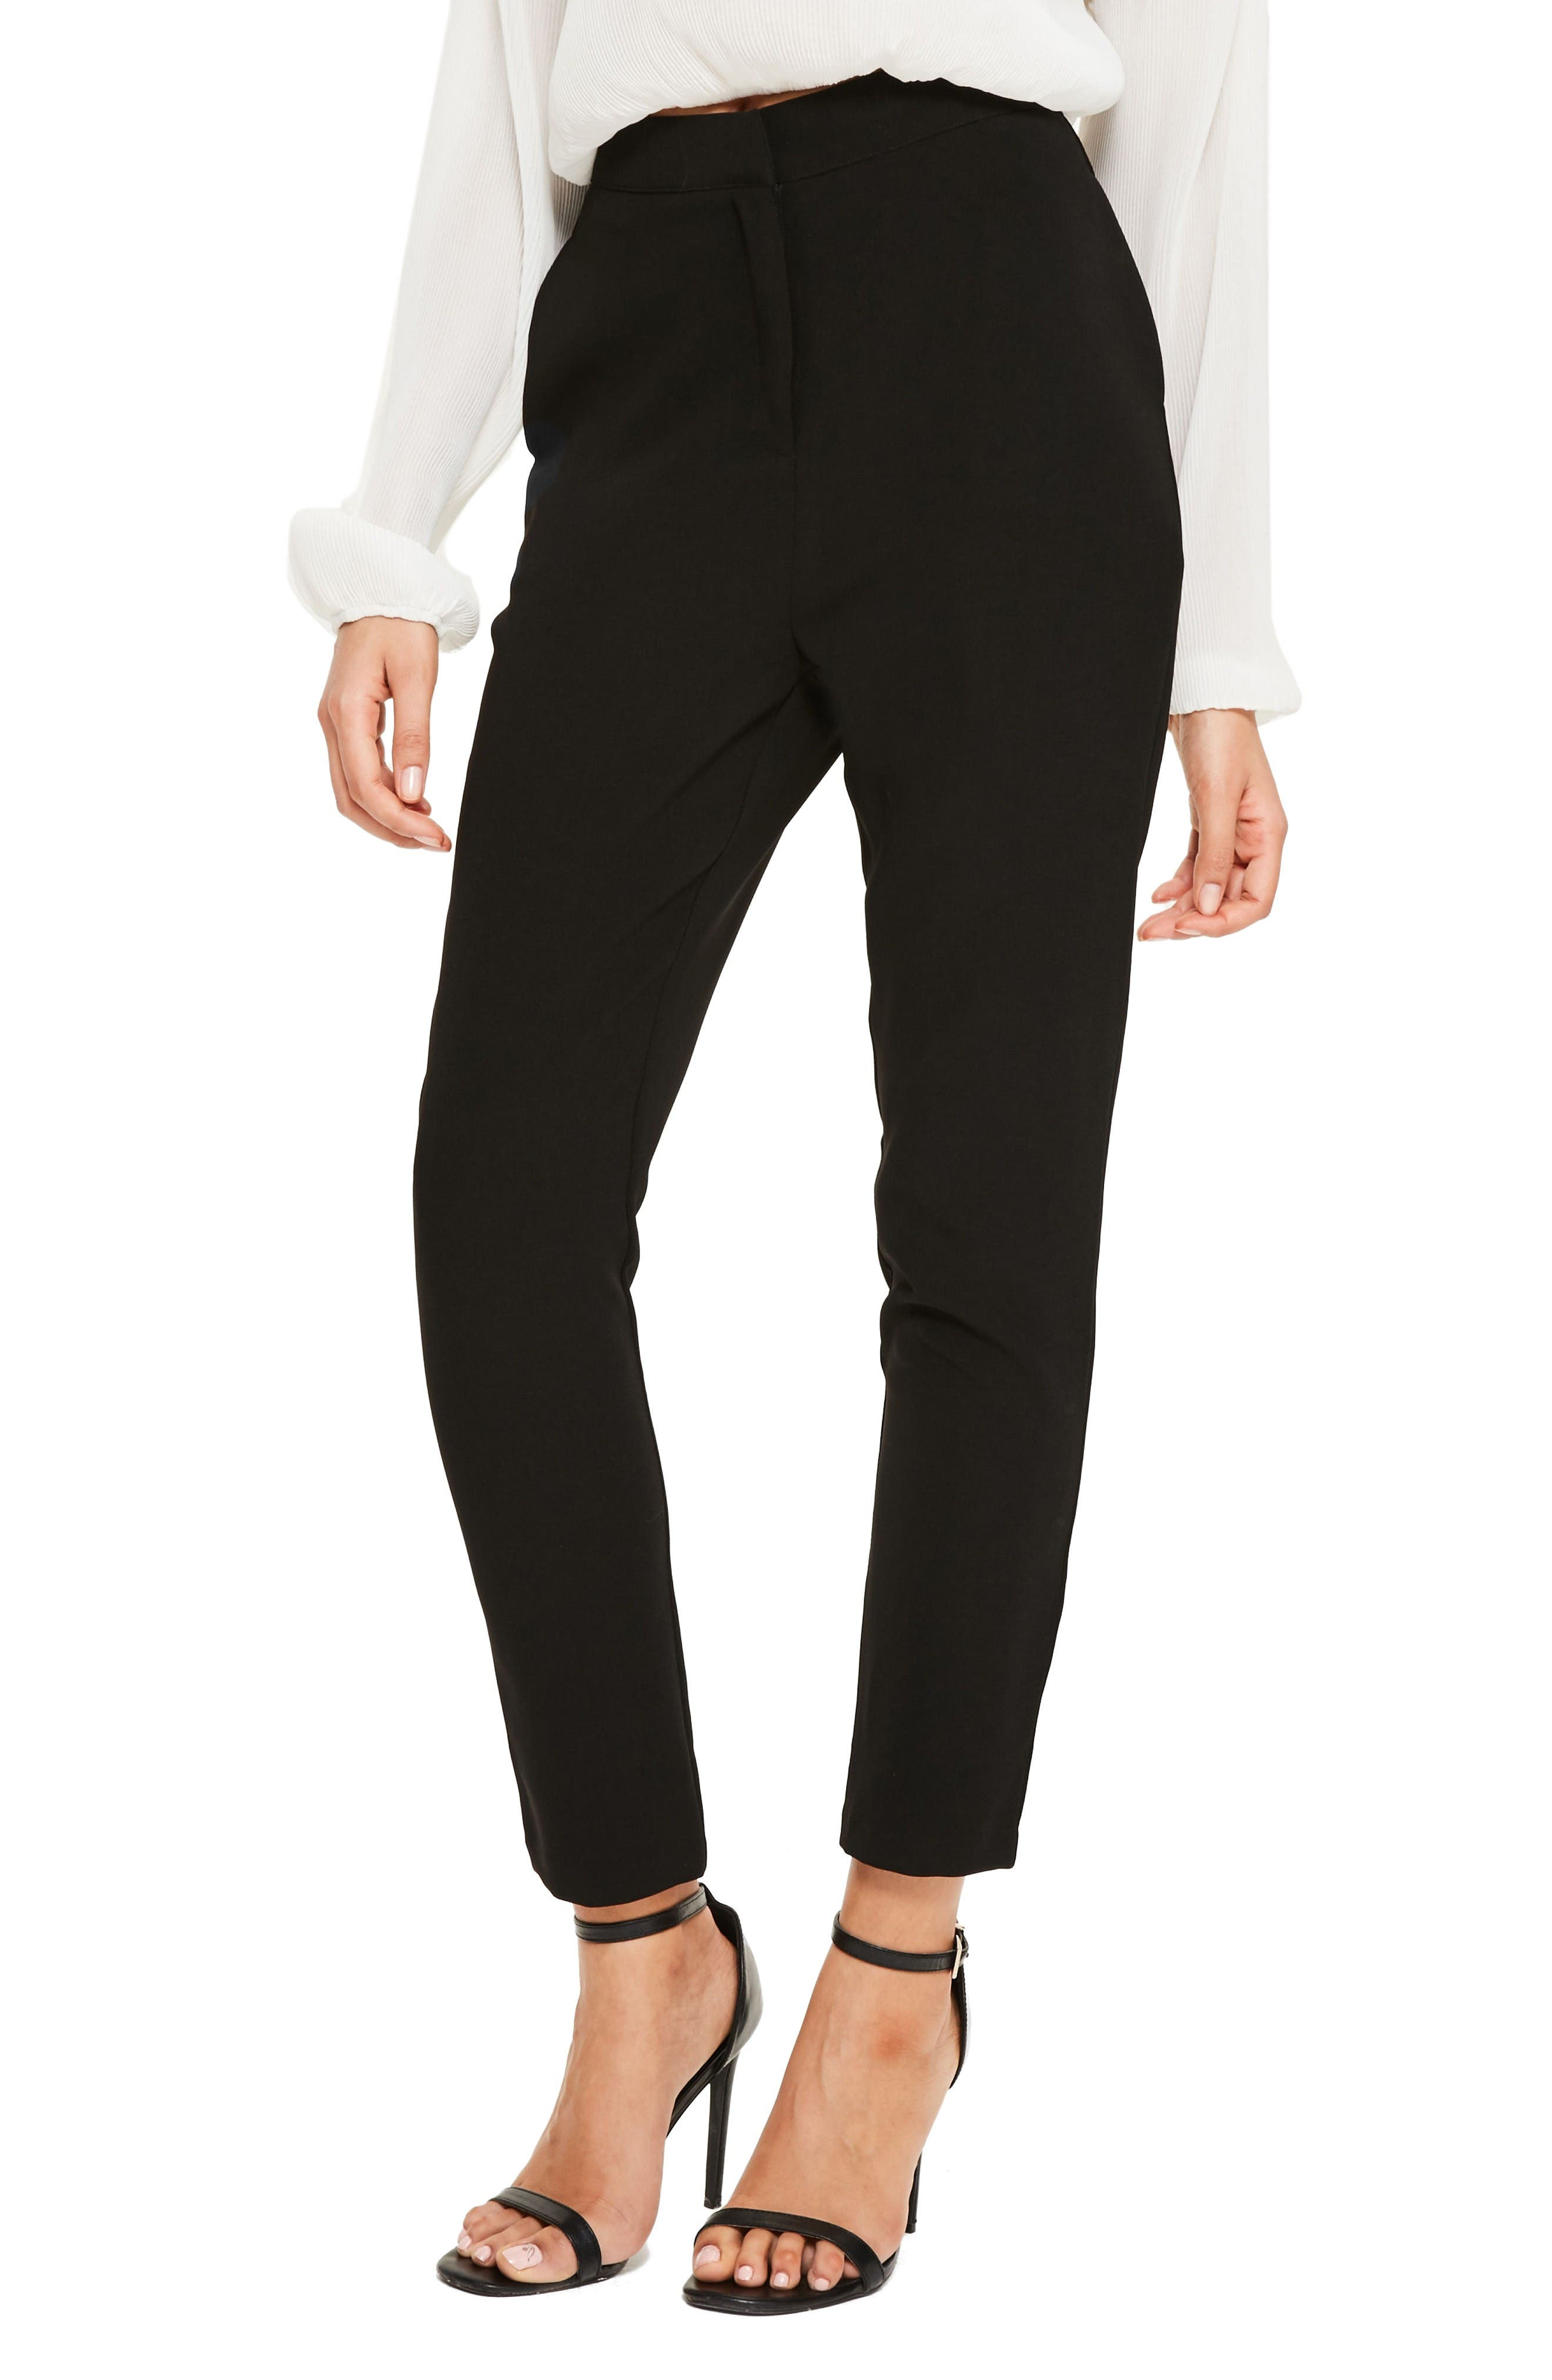 Main Image - Missguided High Waist Cigarette Trousers